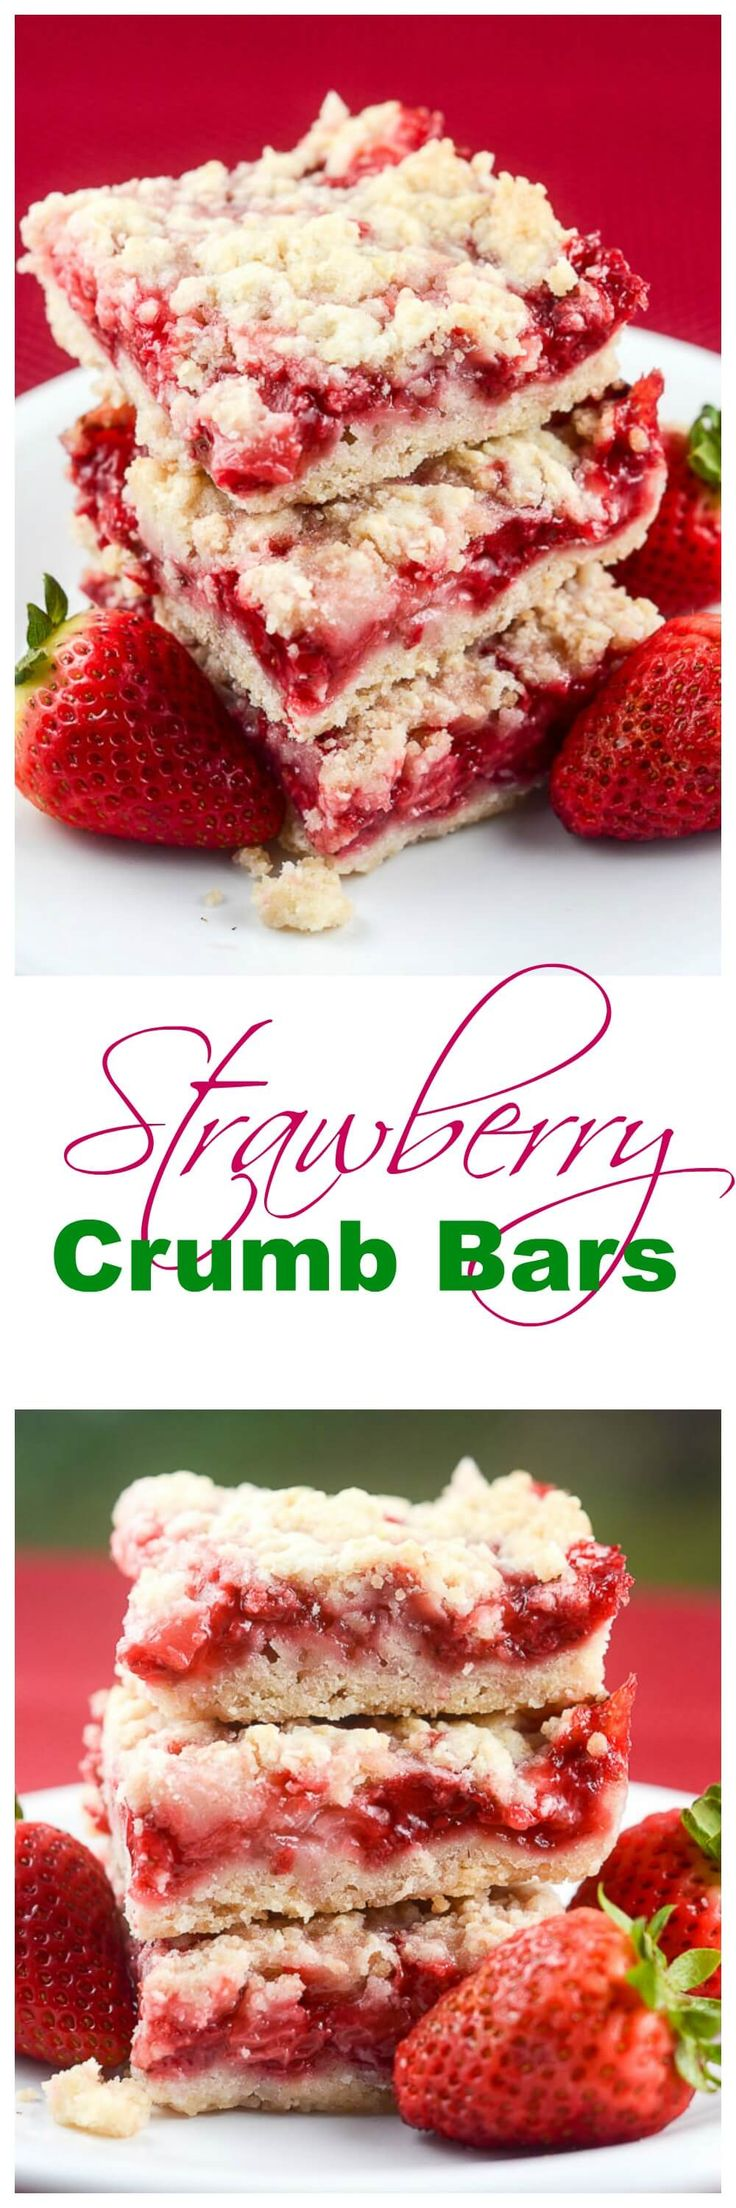 These easy Strawberry Crumb Bars, with a buttery crust, sweet fresh strawberry filling, and crunchy butter crumb topping make wonderful dessert bars for an afternoon snack, or to take to a summer party, picnic, or potluck. ~ http://FlavorMosaic.com More